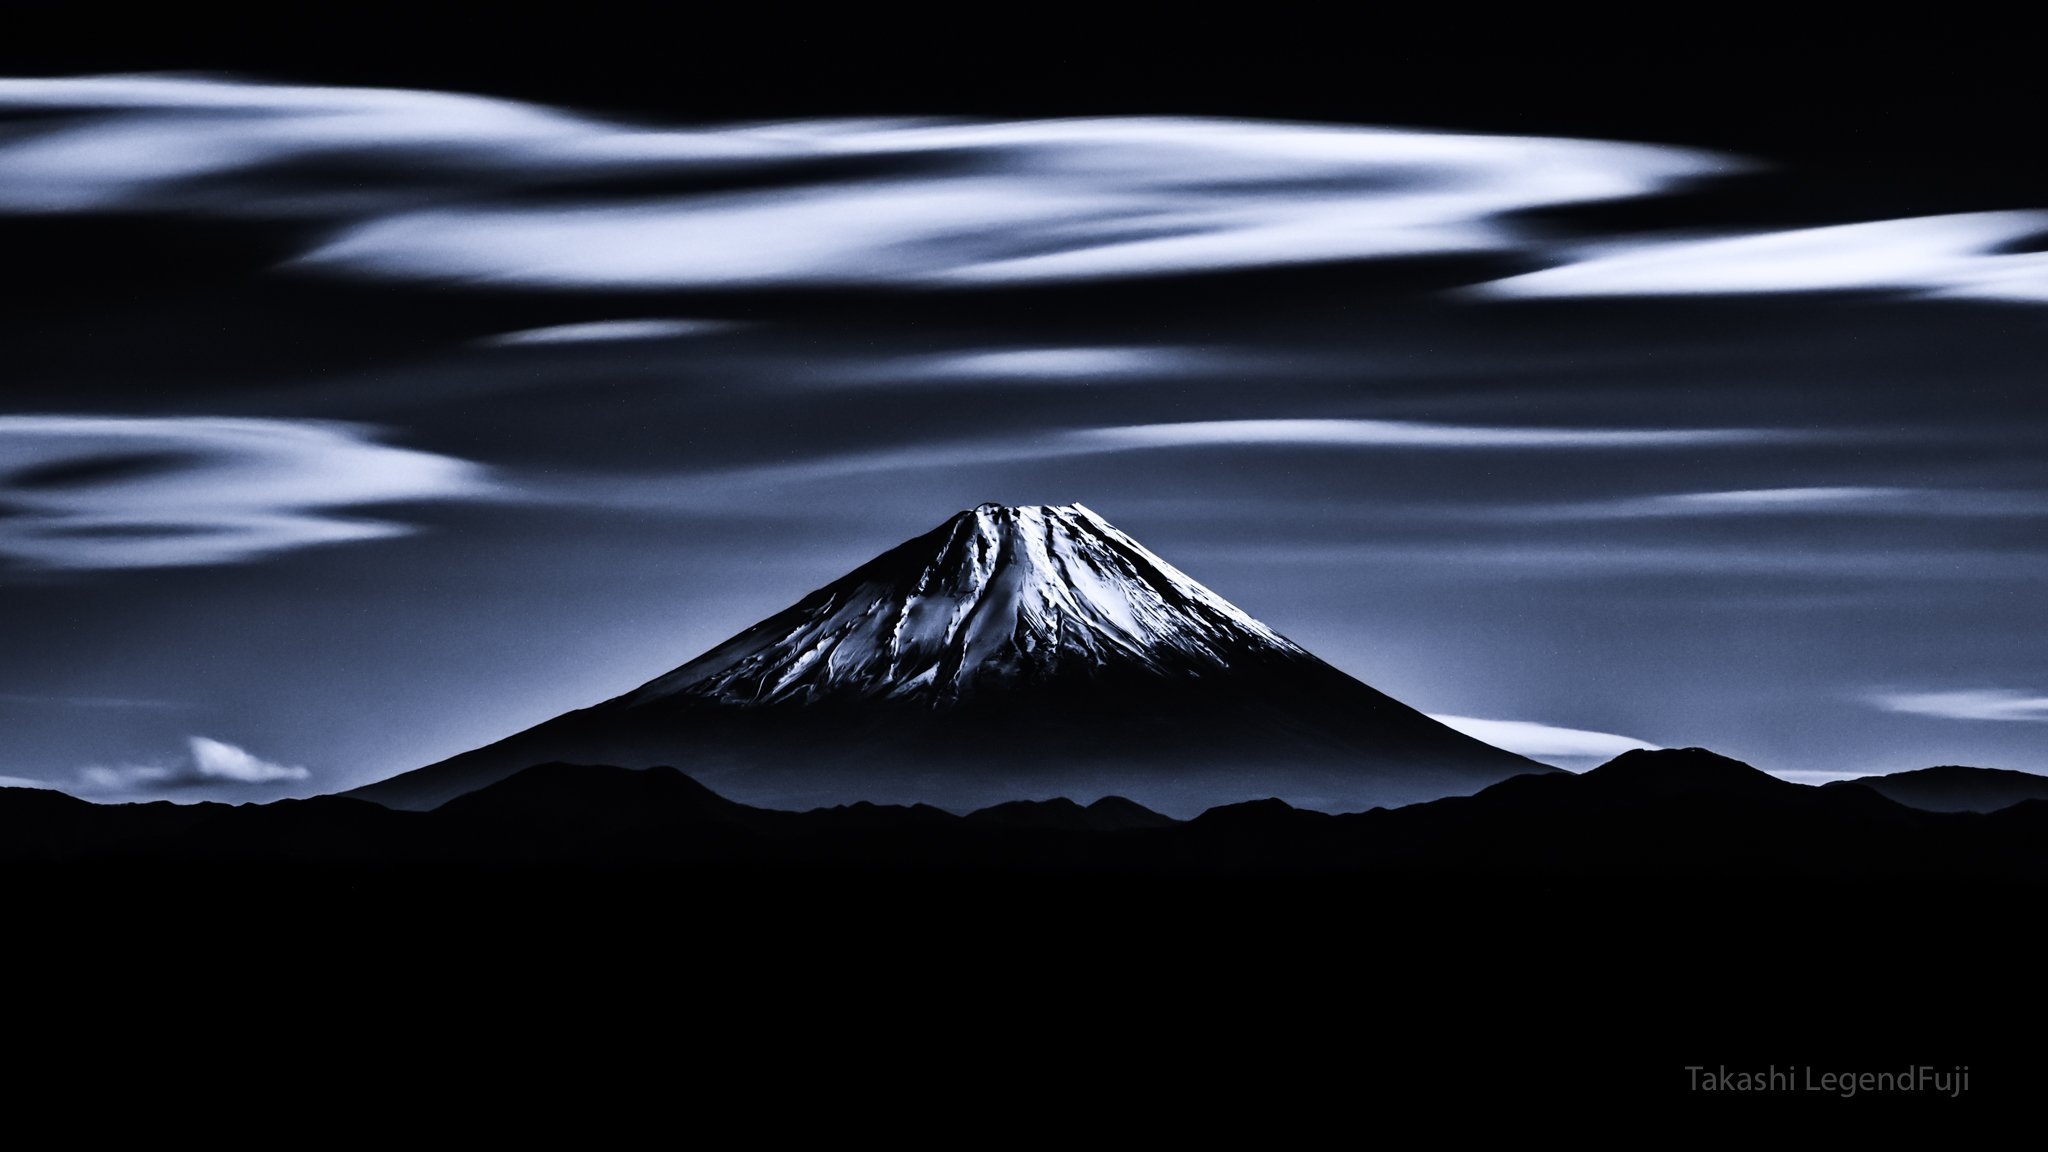 Fuji,mountain,Japan,clouds,landscapes,beautiful,amazing,sky,blue,, Takashi